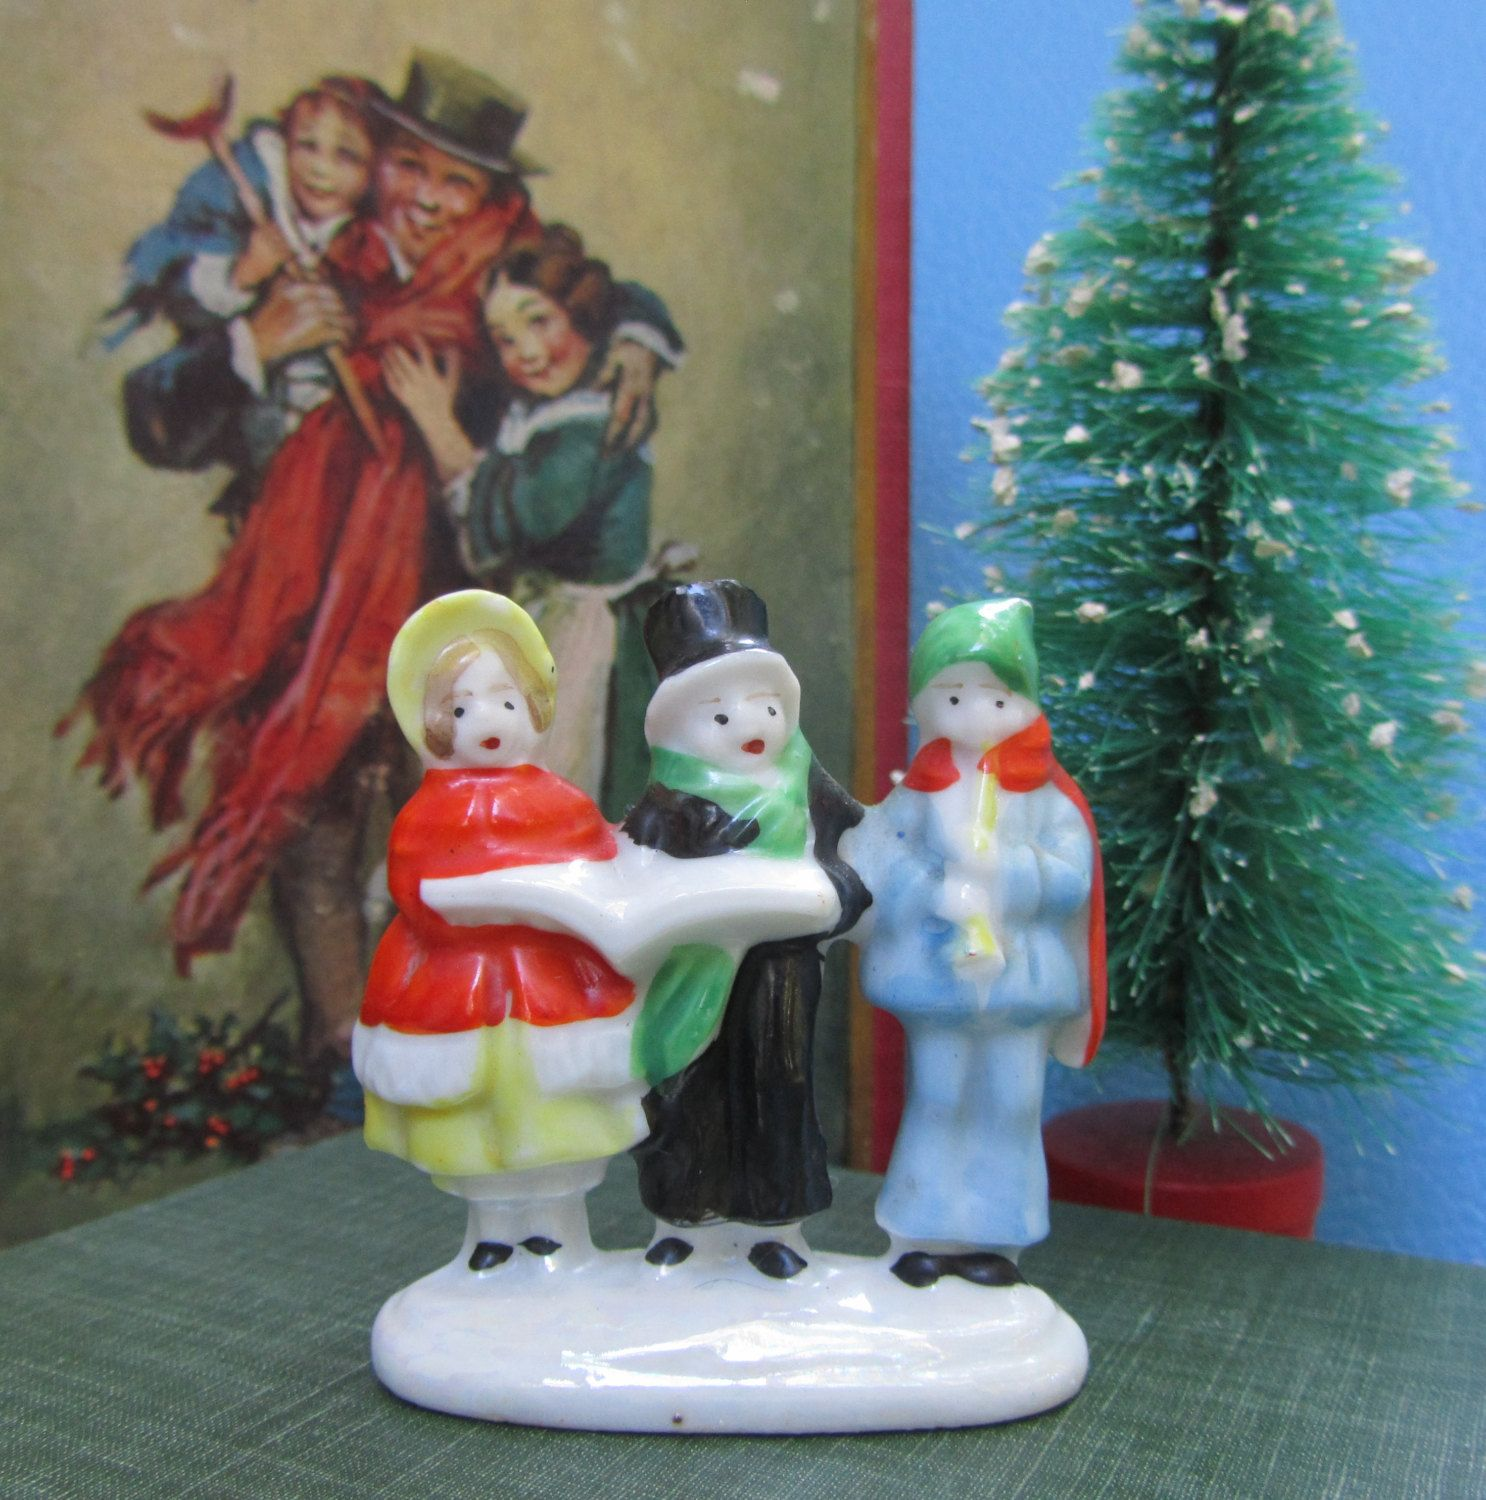 Christmas carolers figurines for sale - Carolers Figurine Ceramic Art Miniature A Christmas Carol Victorian Village Choir Theme Collectible Painted